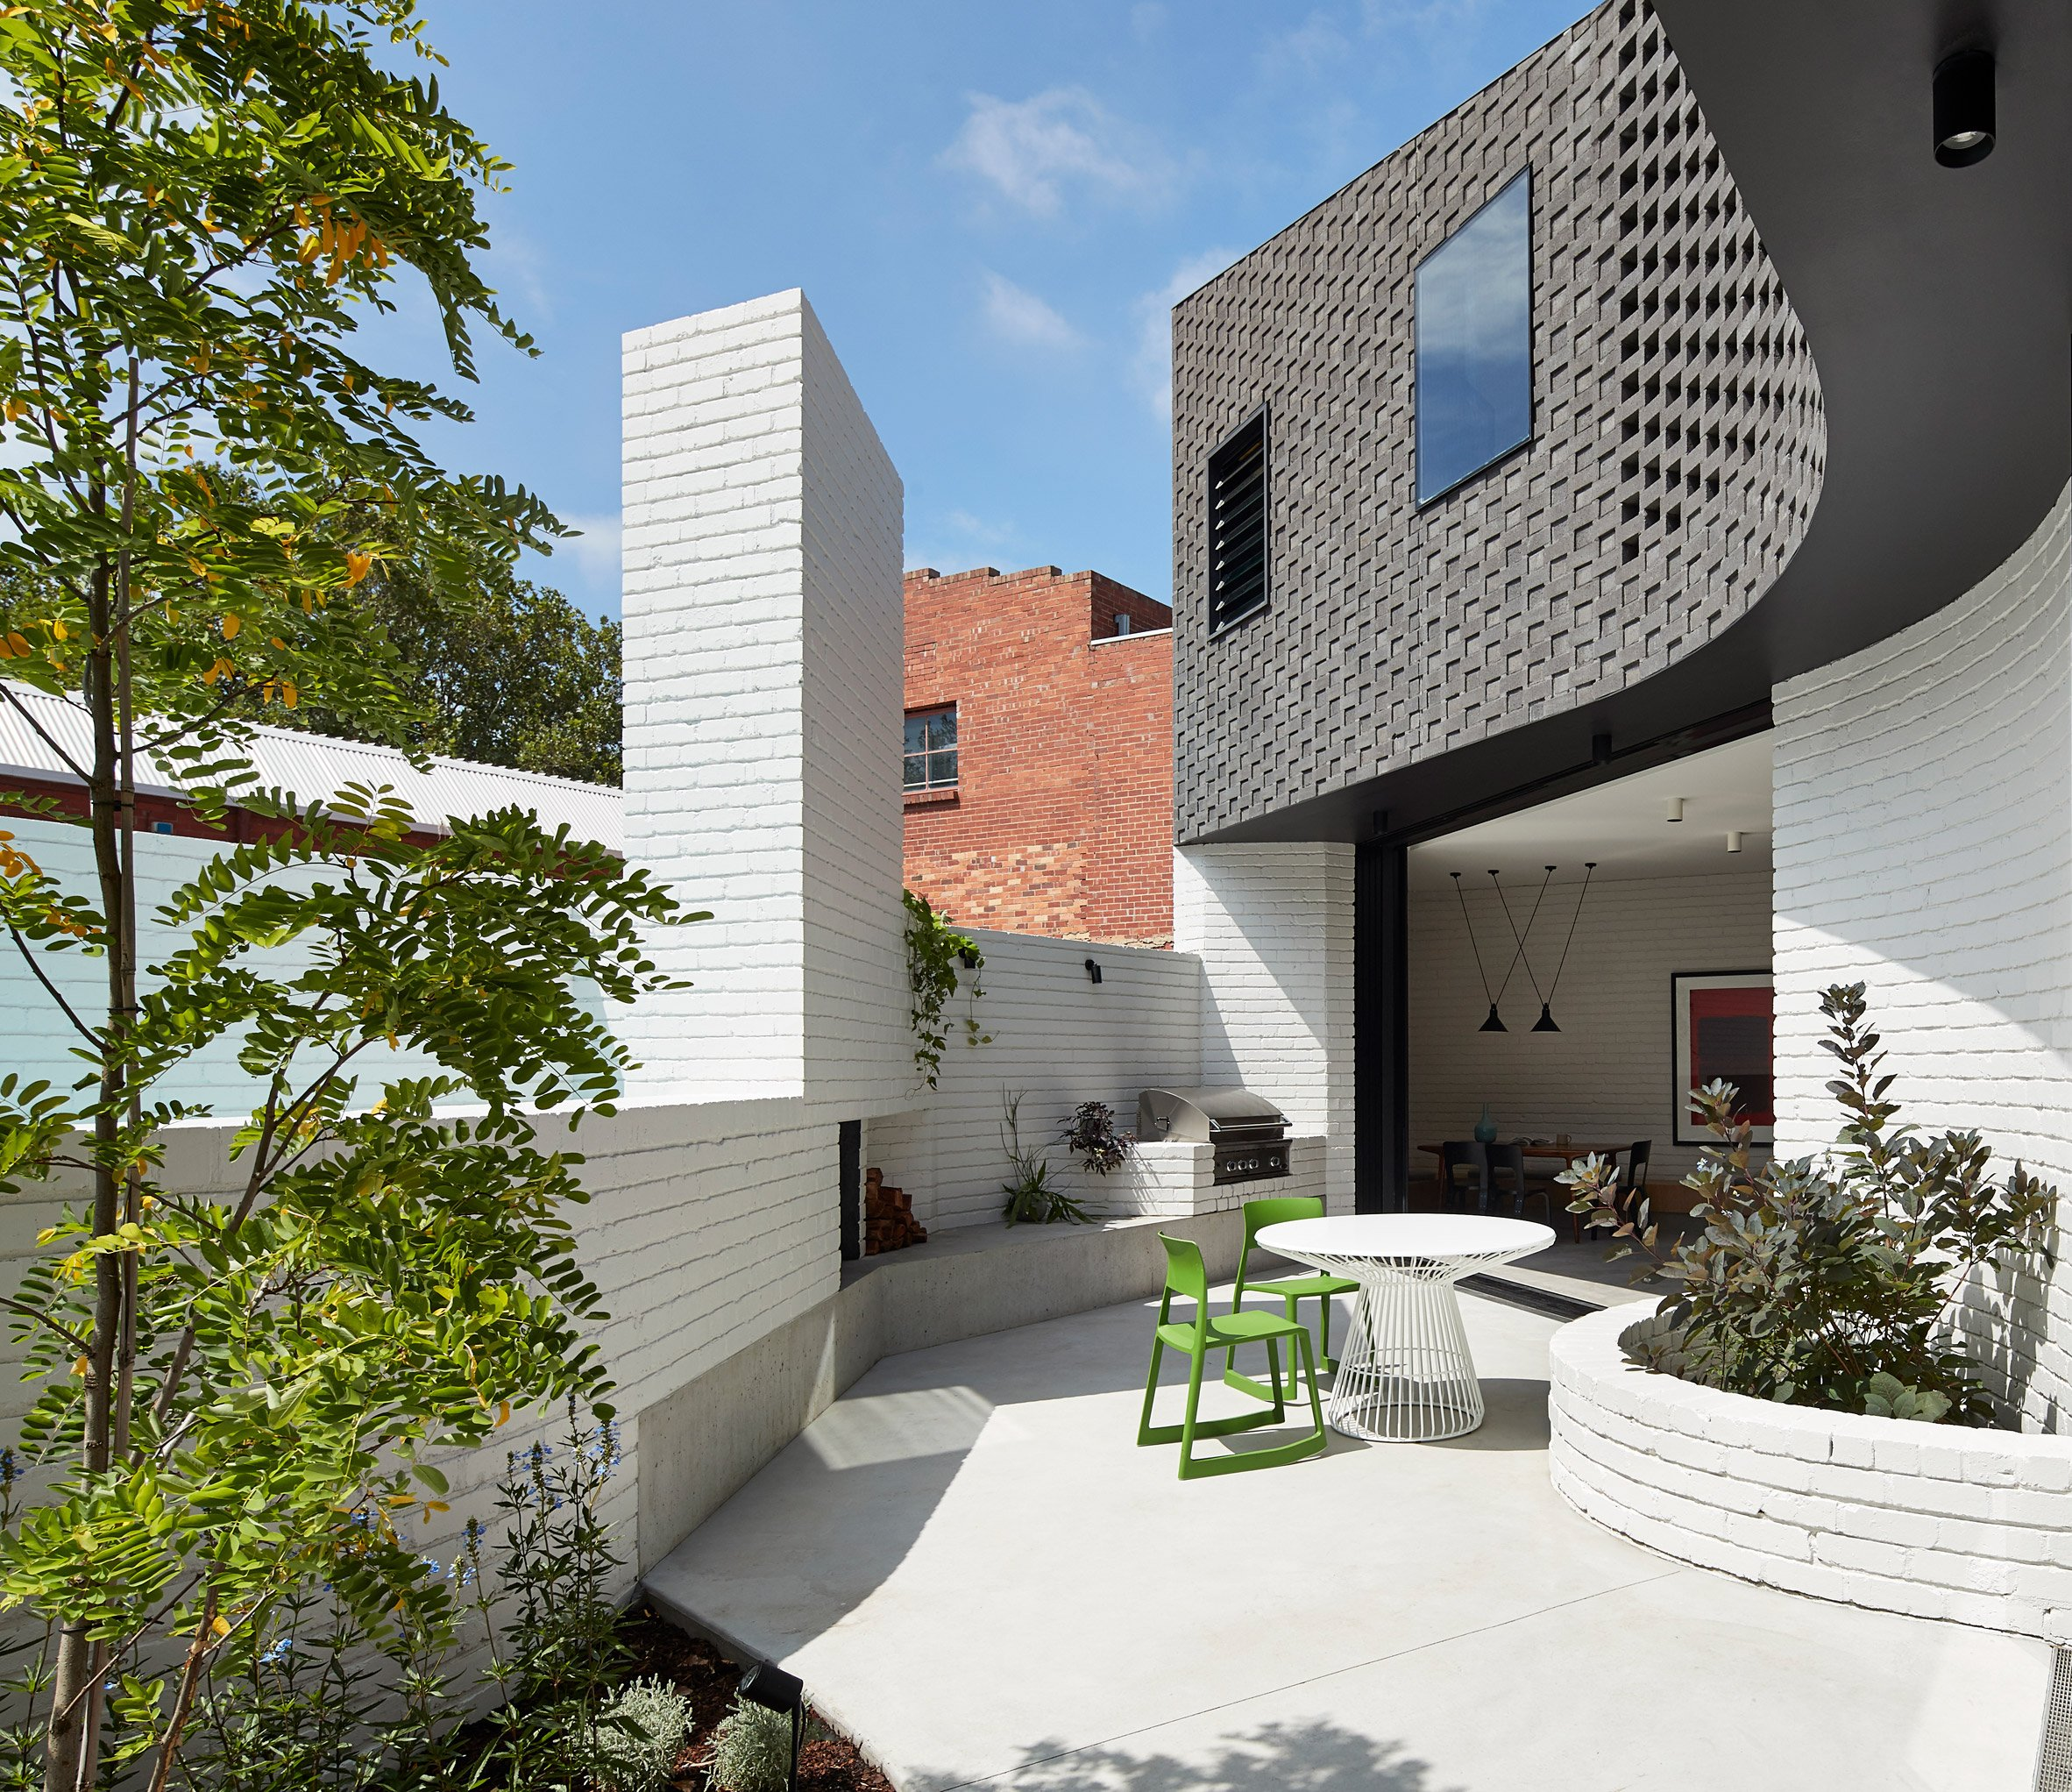 Perimeter House encloses private courtyard and plunge pool in Melbourne